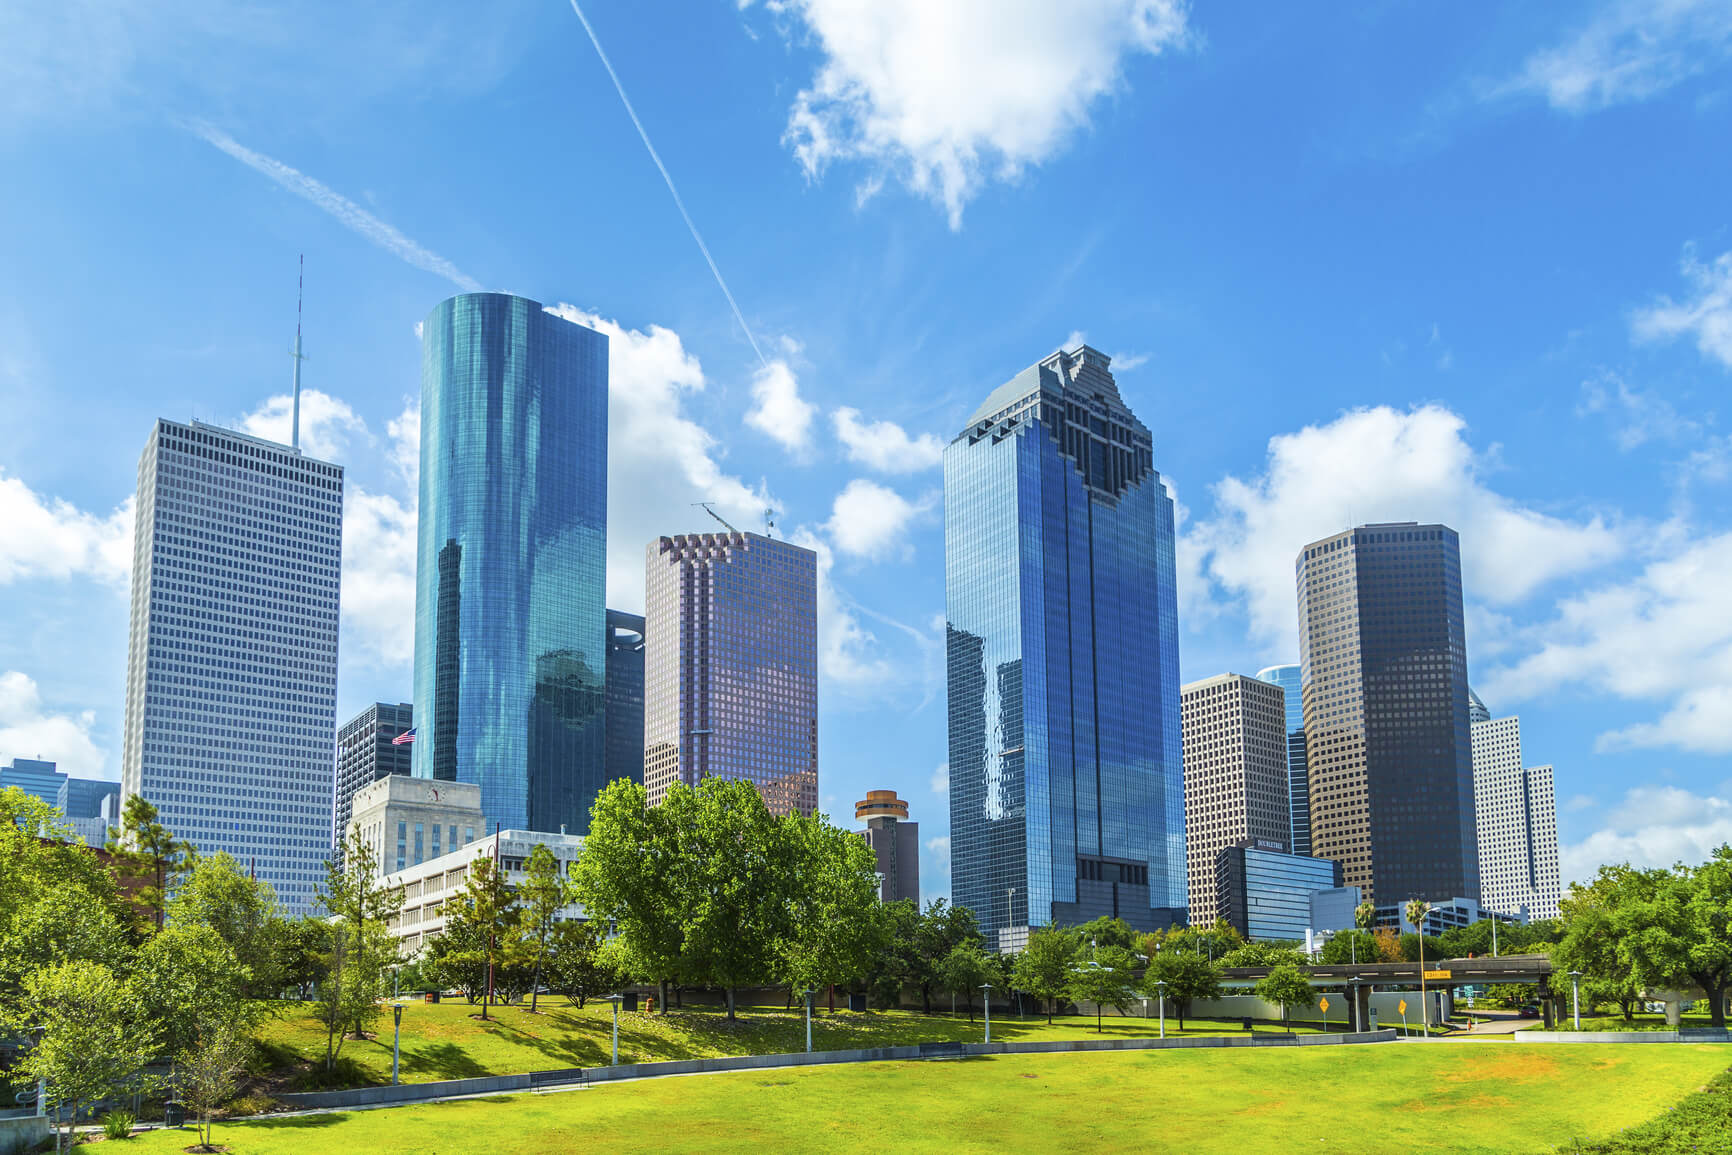 Non-stop from New York to Houston, Texas (& vice versa) for only $74 roundtrip (Oct-Dec dates)